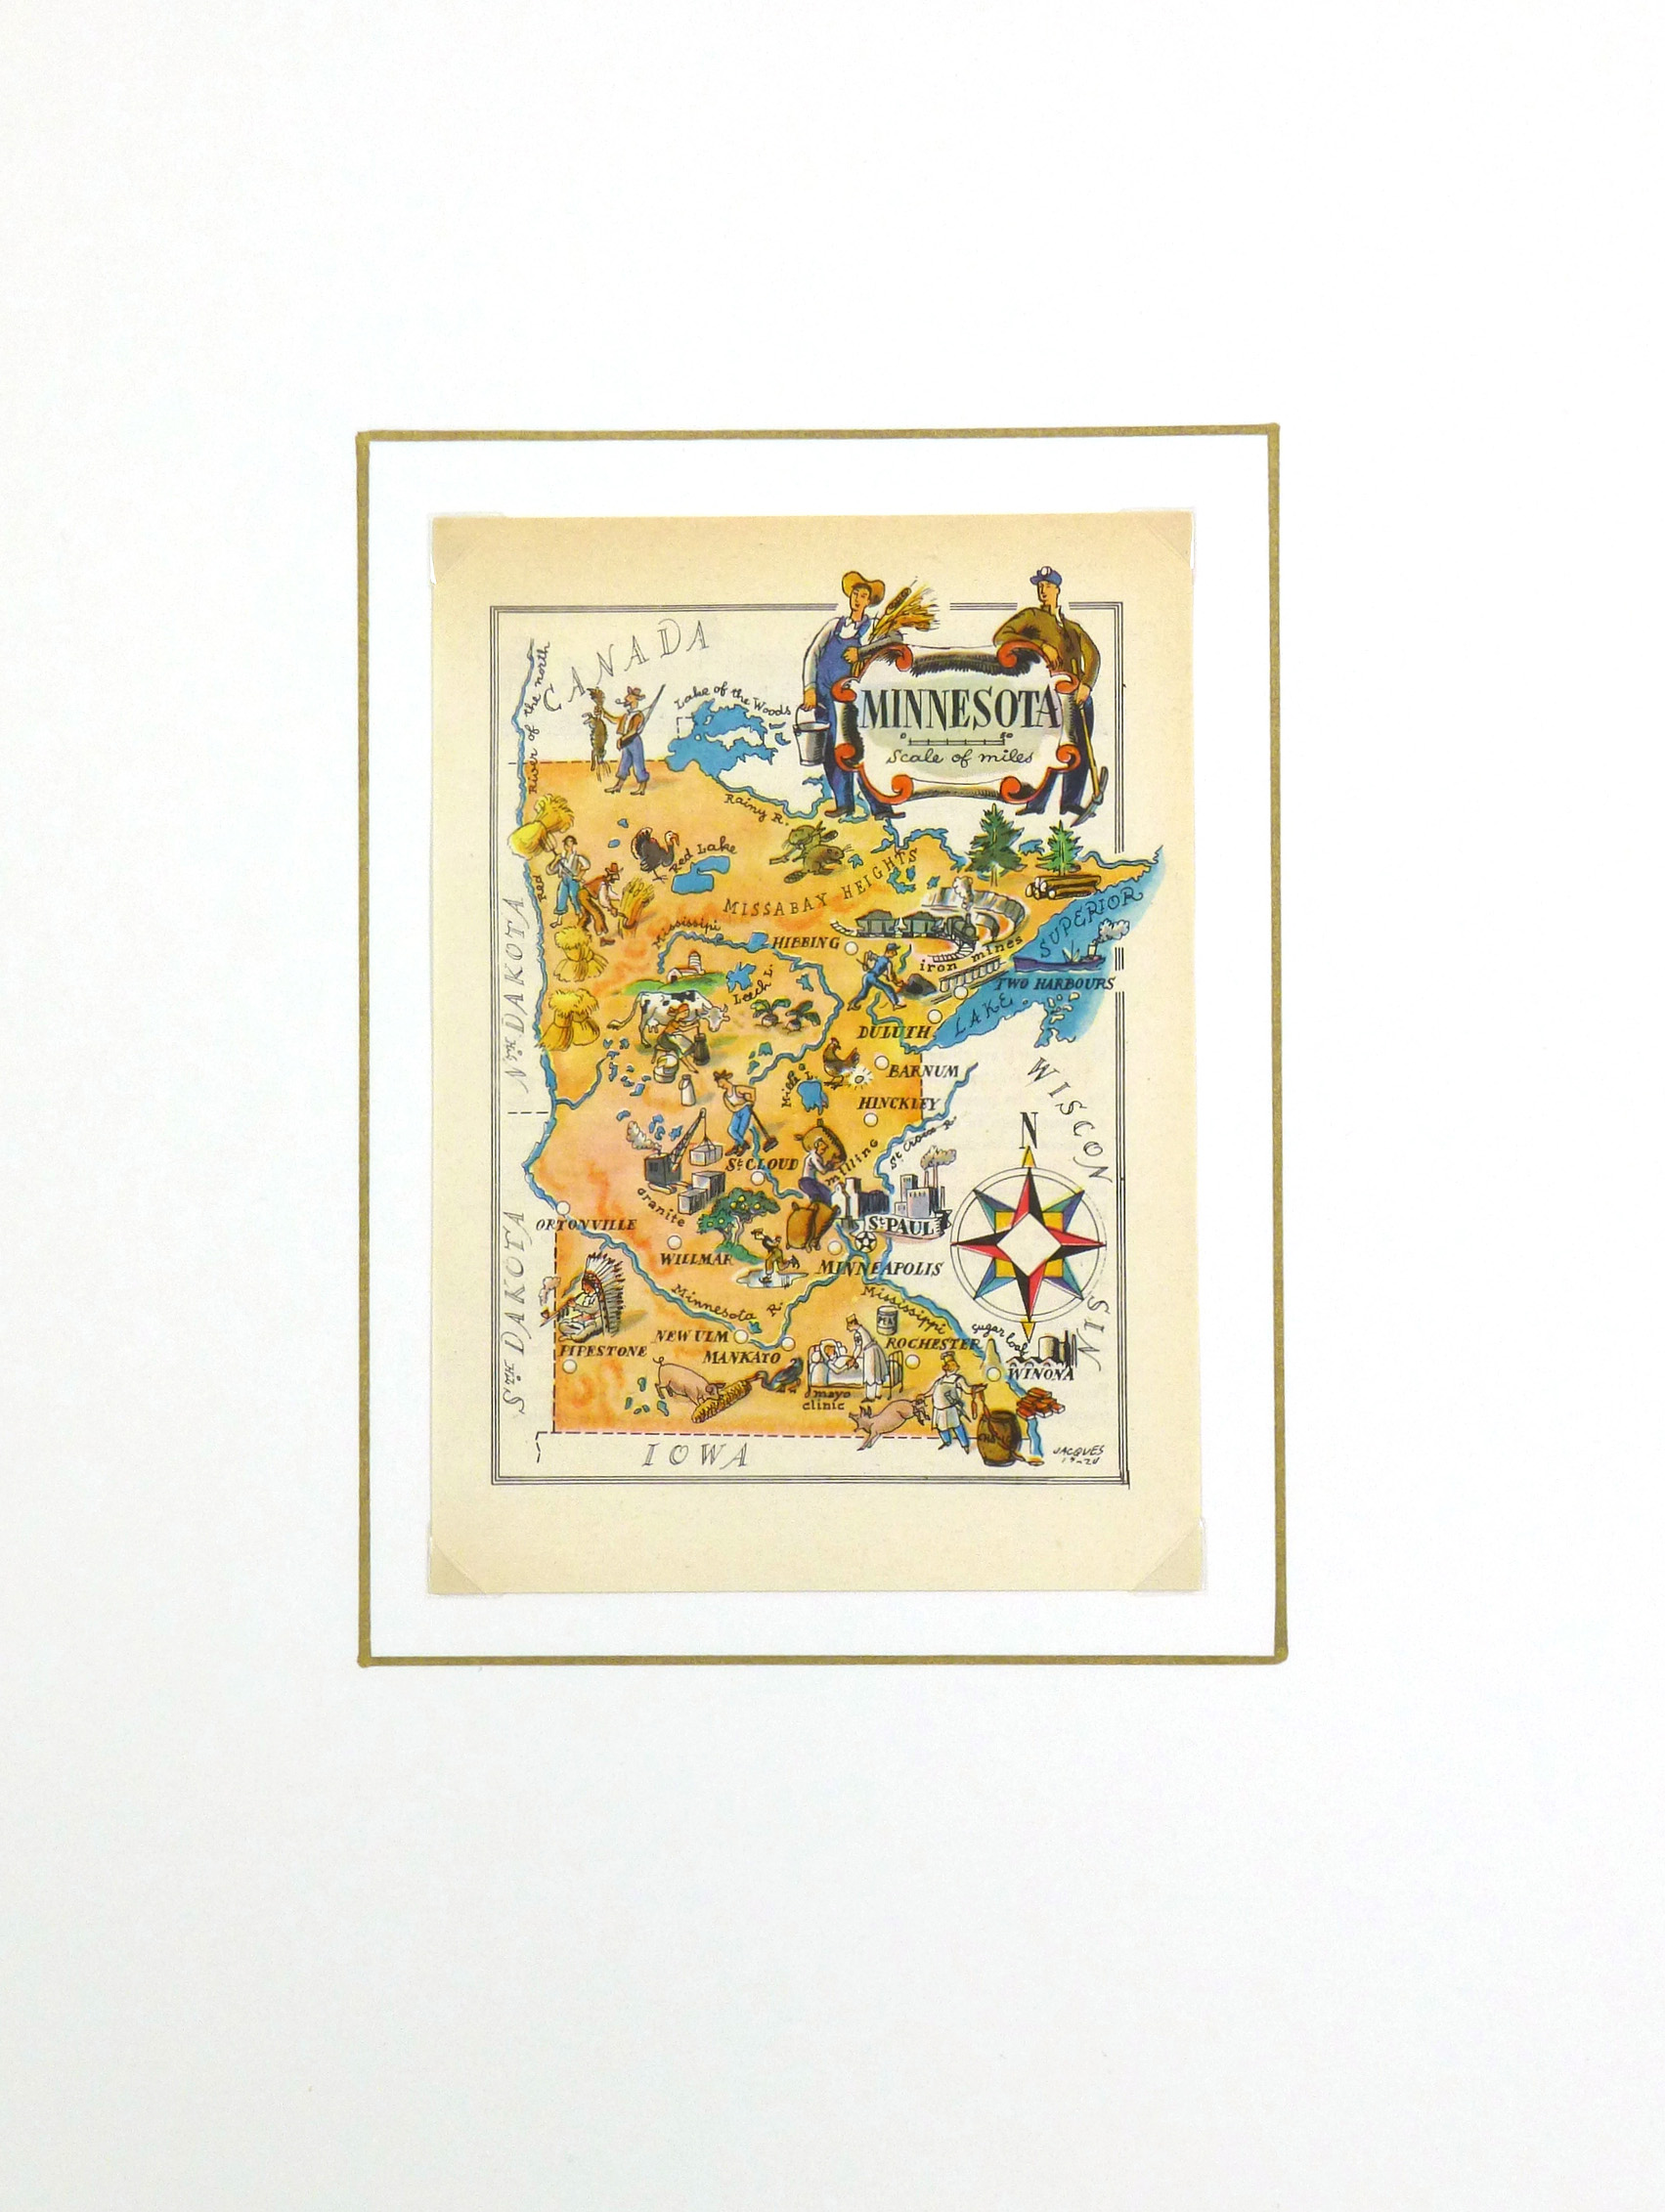 Minnesota Pictorial Map, 1946-matted-6230K